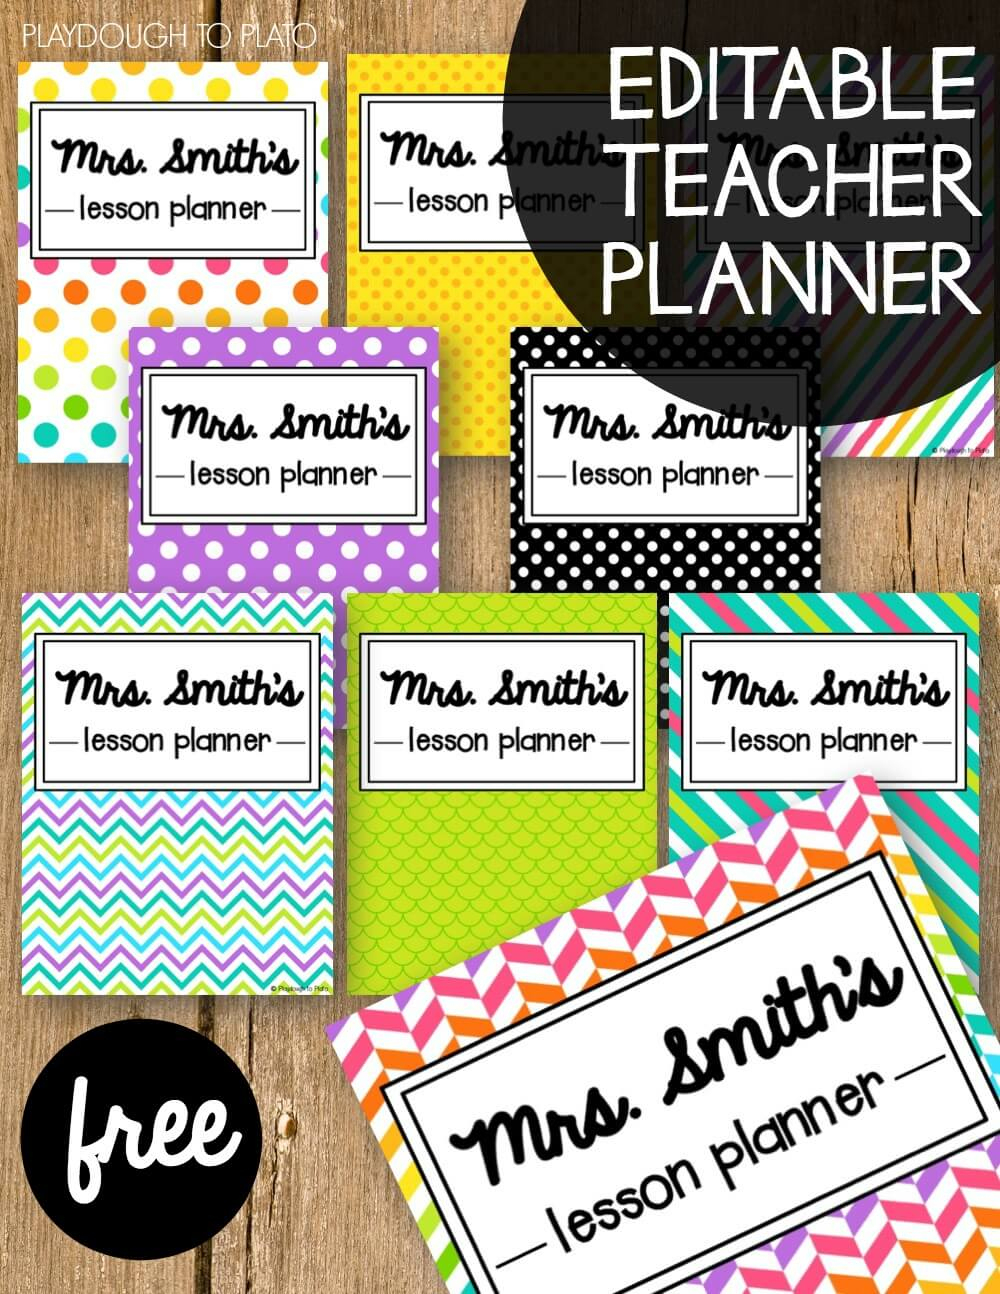 Free Teacher Planner - Playdough To Plato - Printable Teacher Planner Free